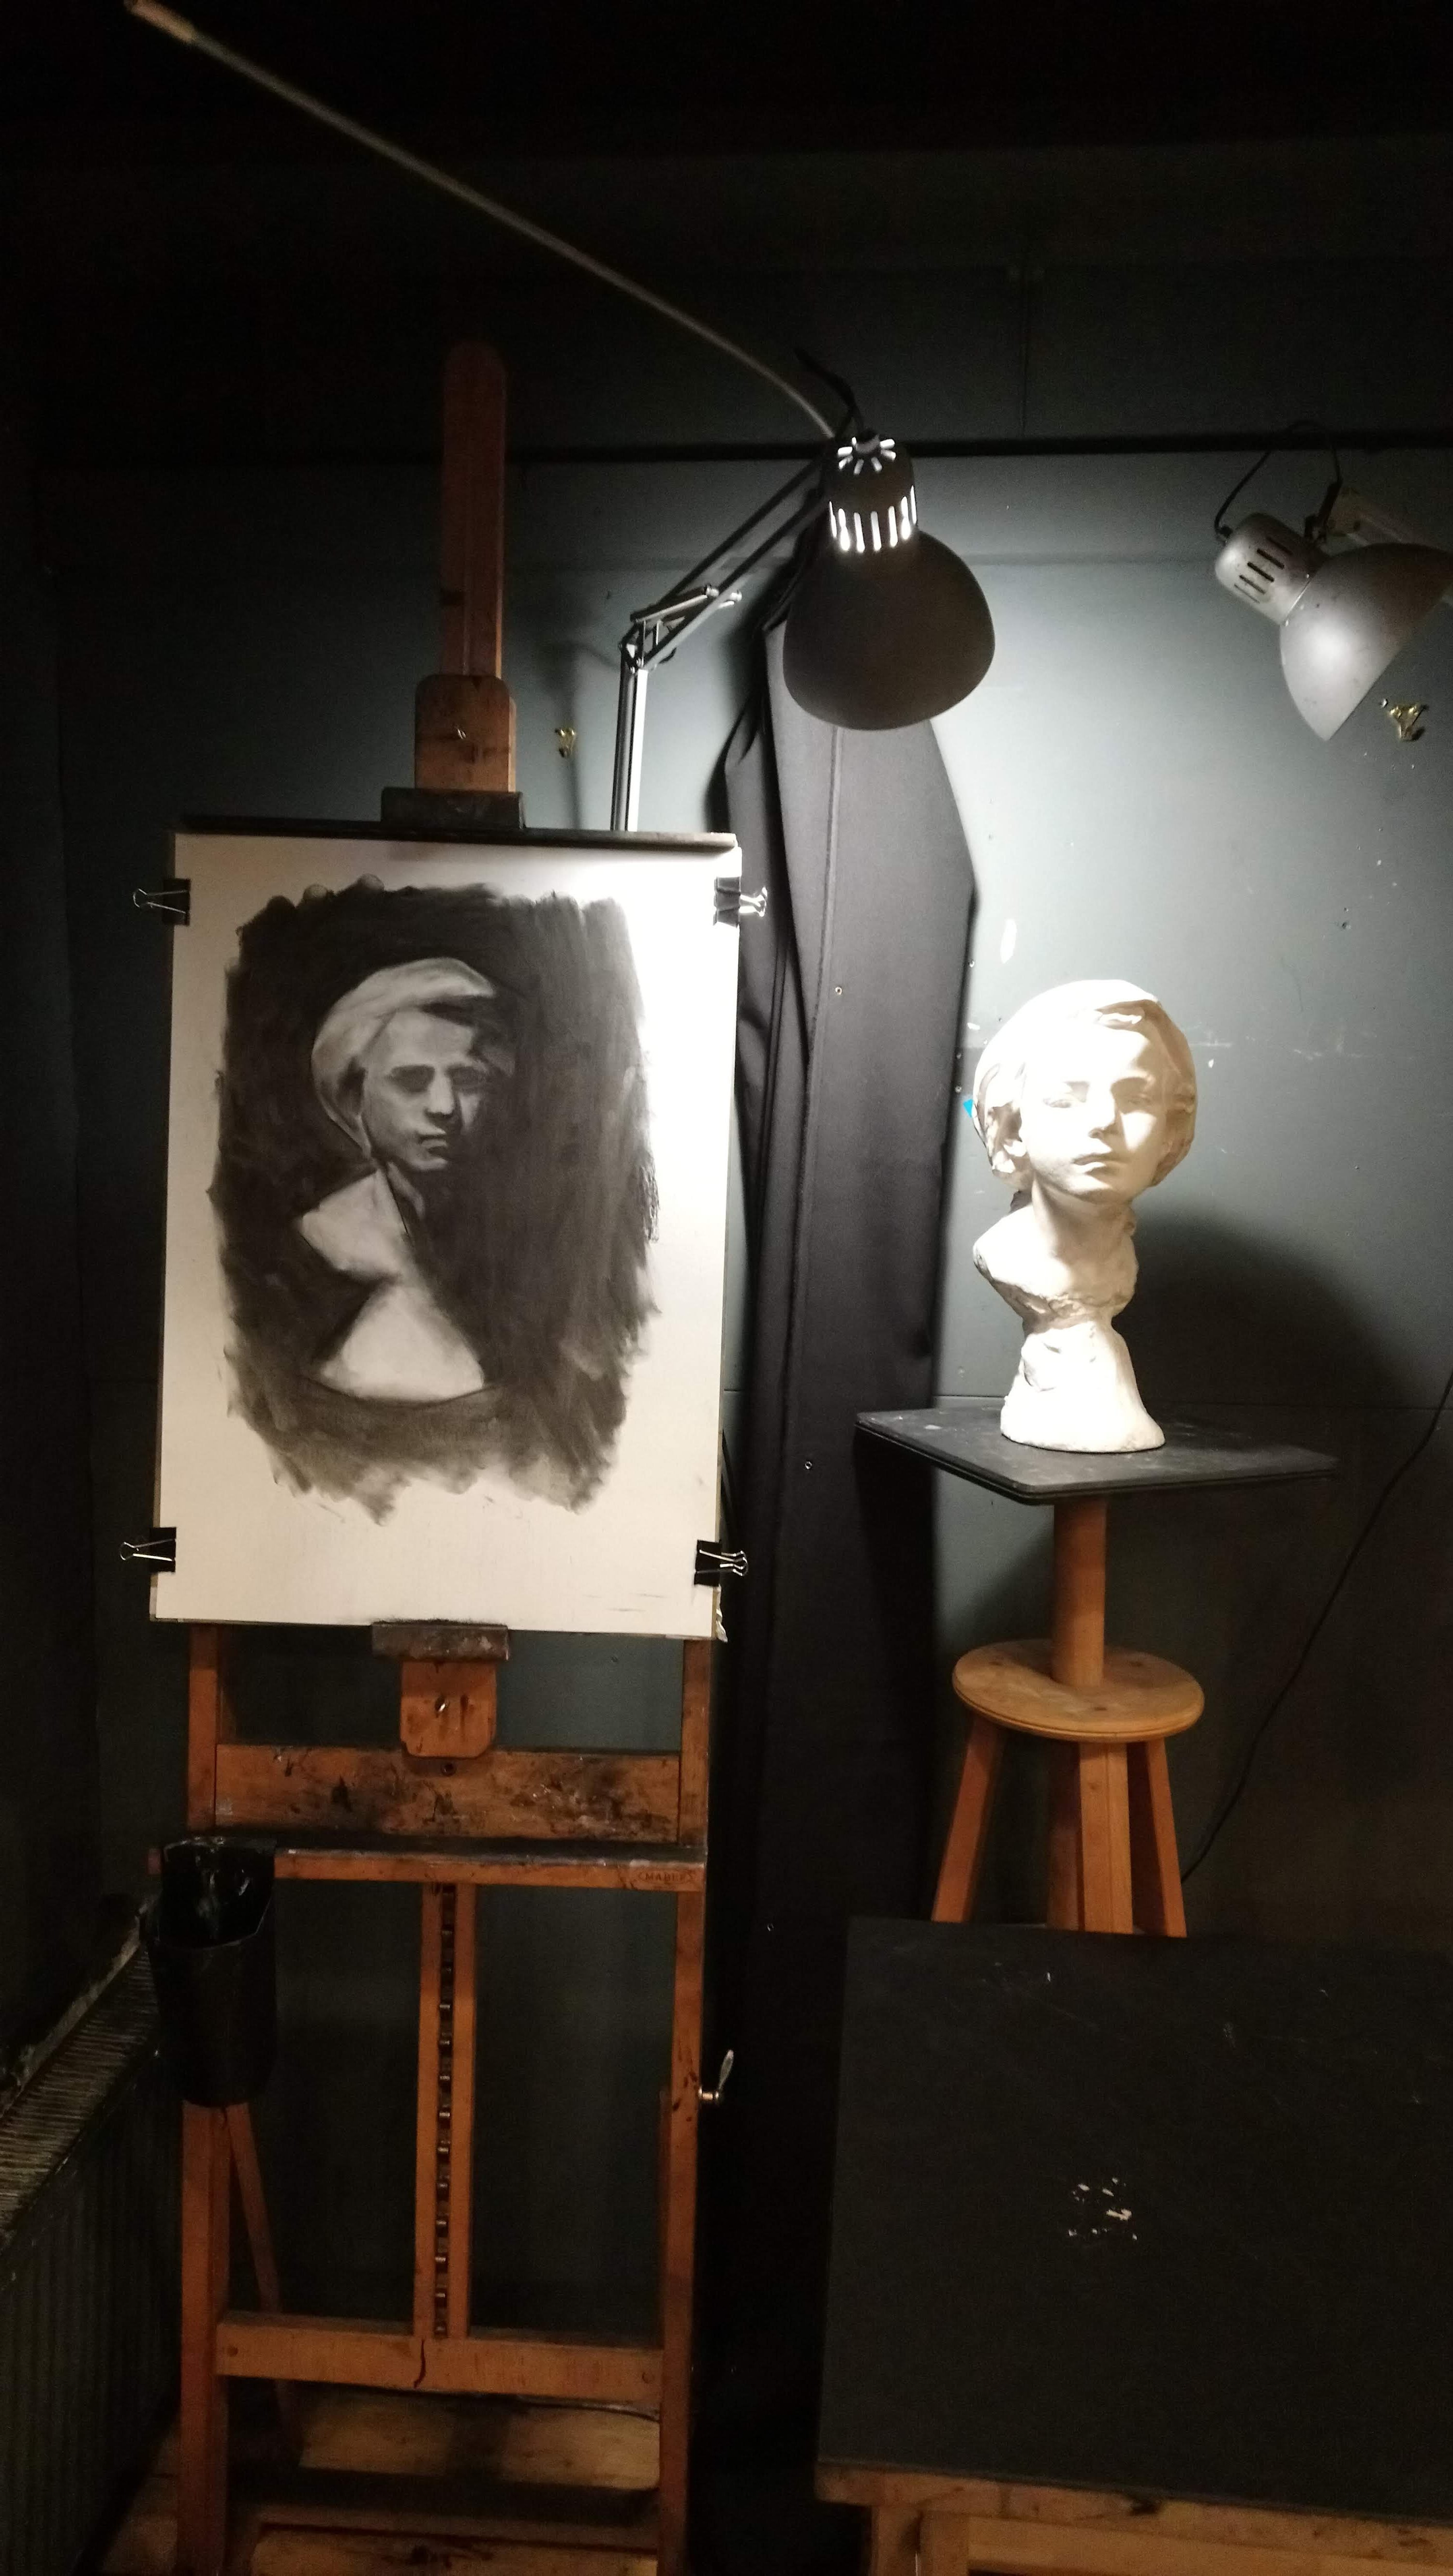 Foundation art course, oil painting, Drawing, sketch, art master, artist, london artist, london fine art studios, fine art studios, london studios, artwork, painting, oil painting, art classes, art workshops, art class, professional artist, london studios